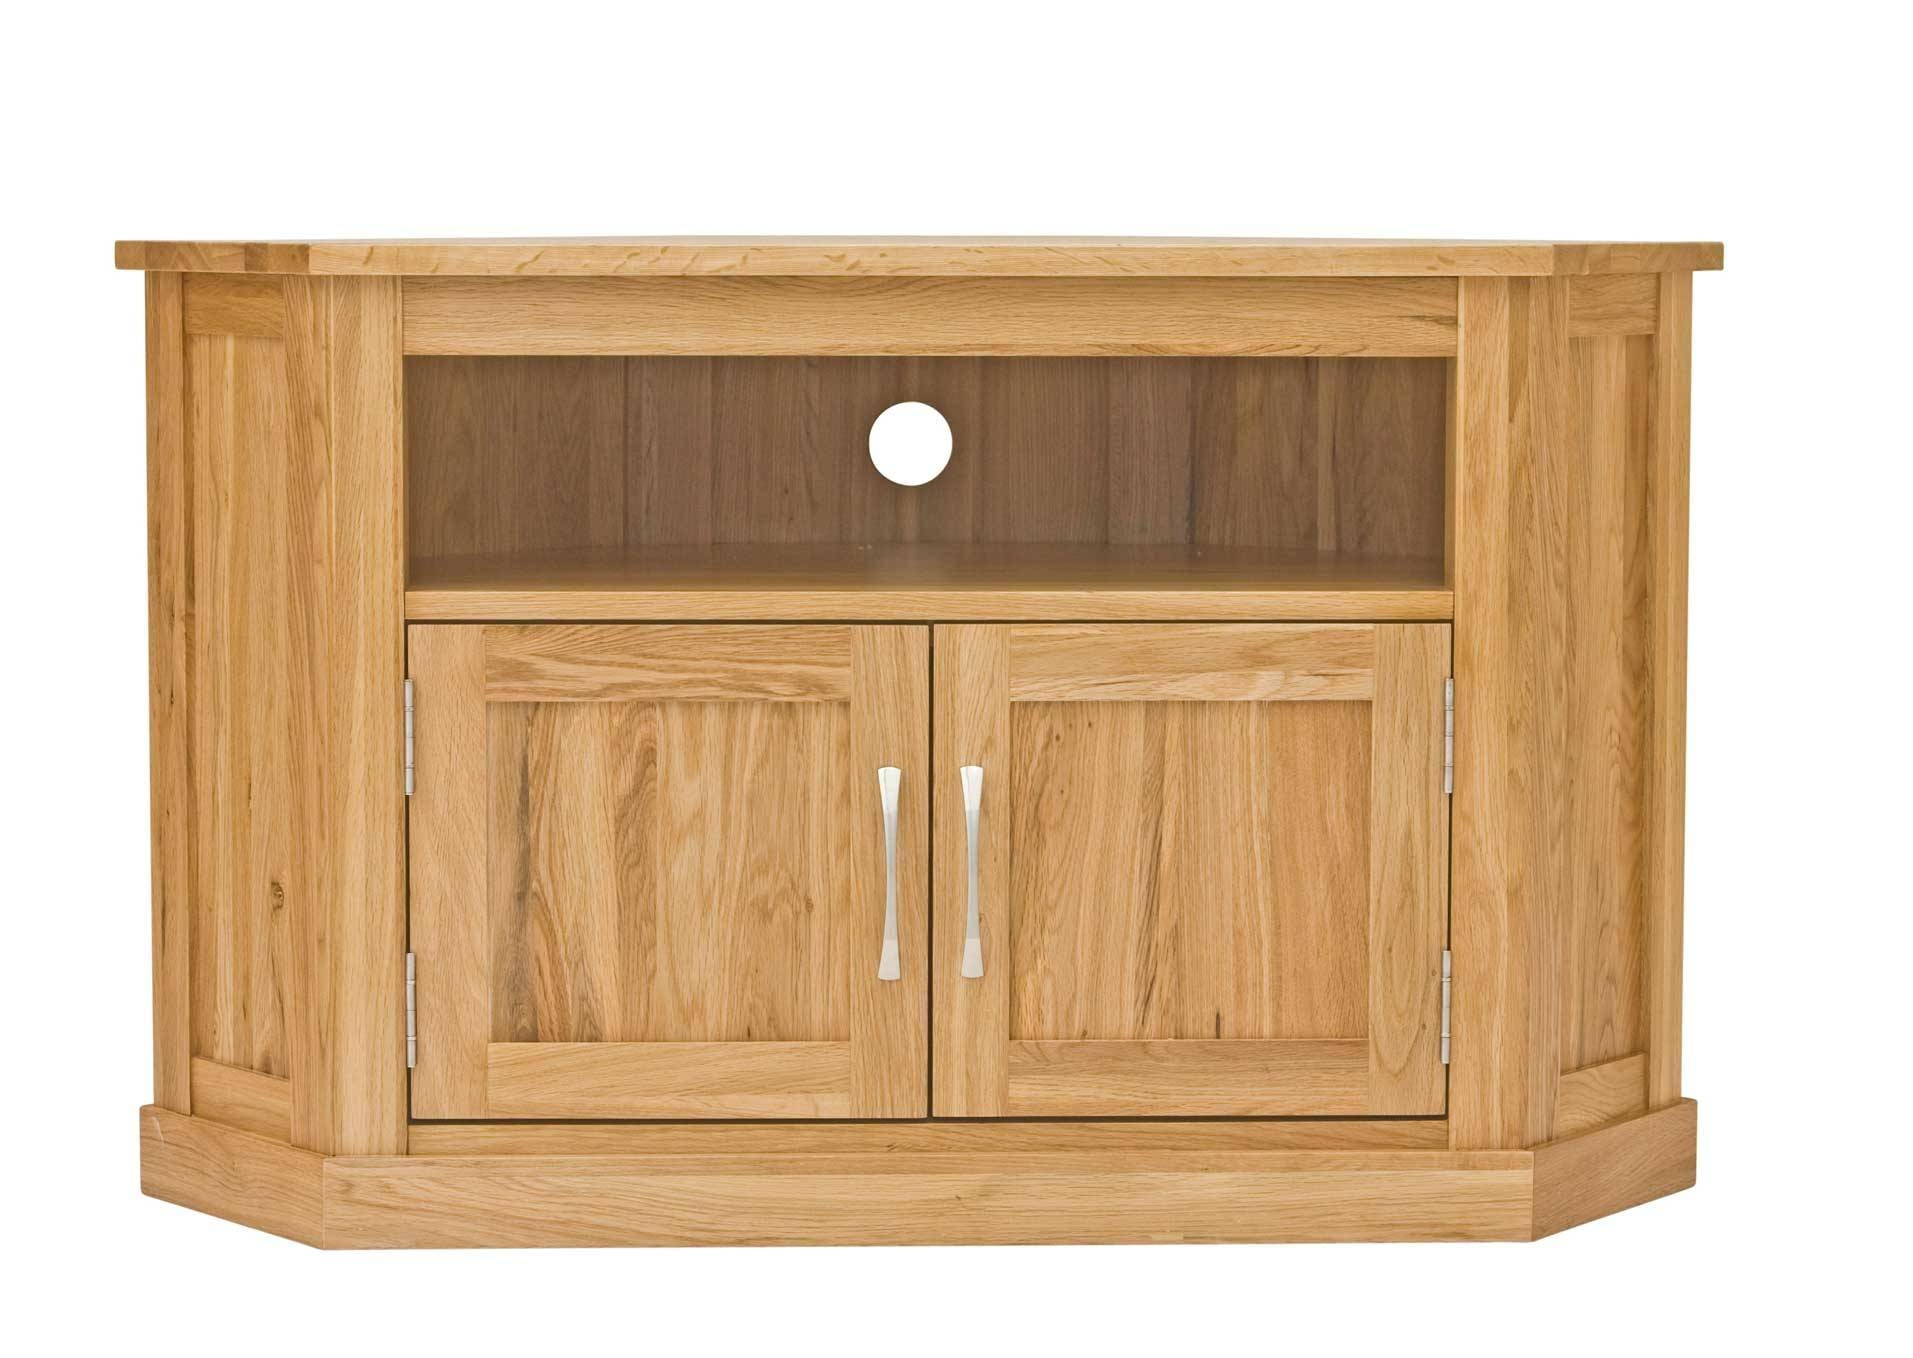 Classic Oak Corner Television Cabinet | Hampshire Furniture In Small Oak Corner Tv Stands (View 2 of 15)